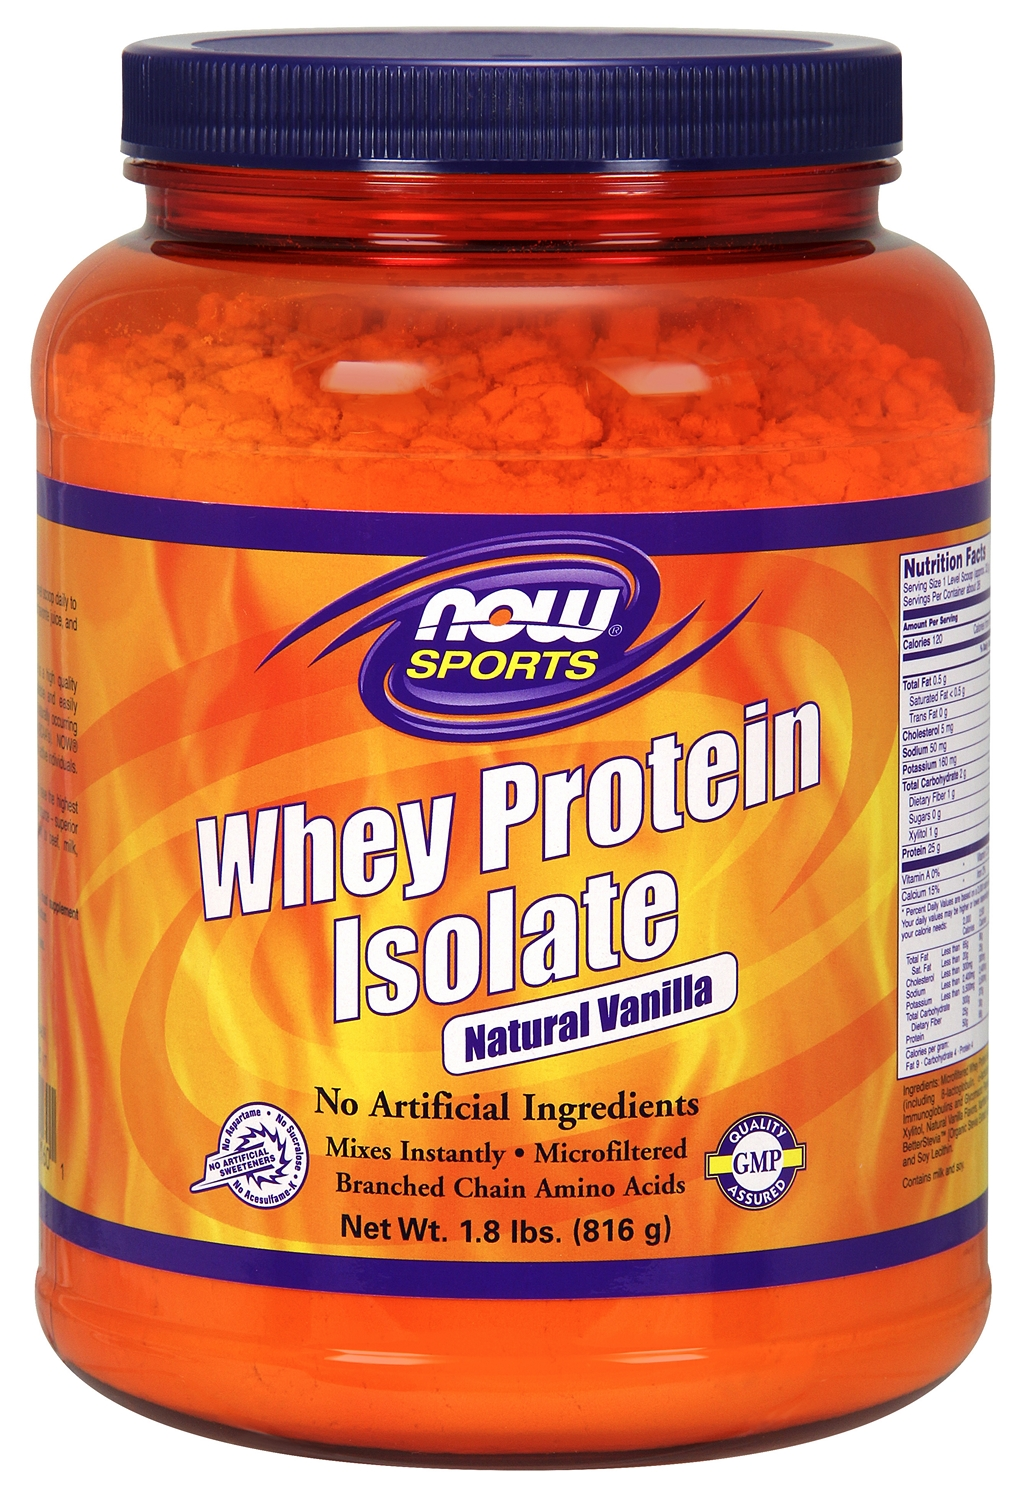 Whey Protein Isolate Natural Vanilla 1.8 lbs (816 g) by NOW